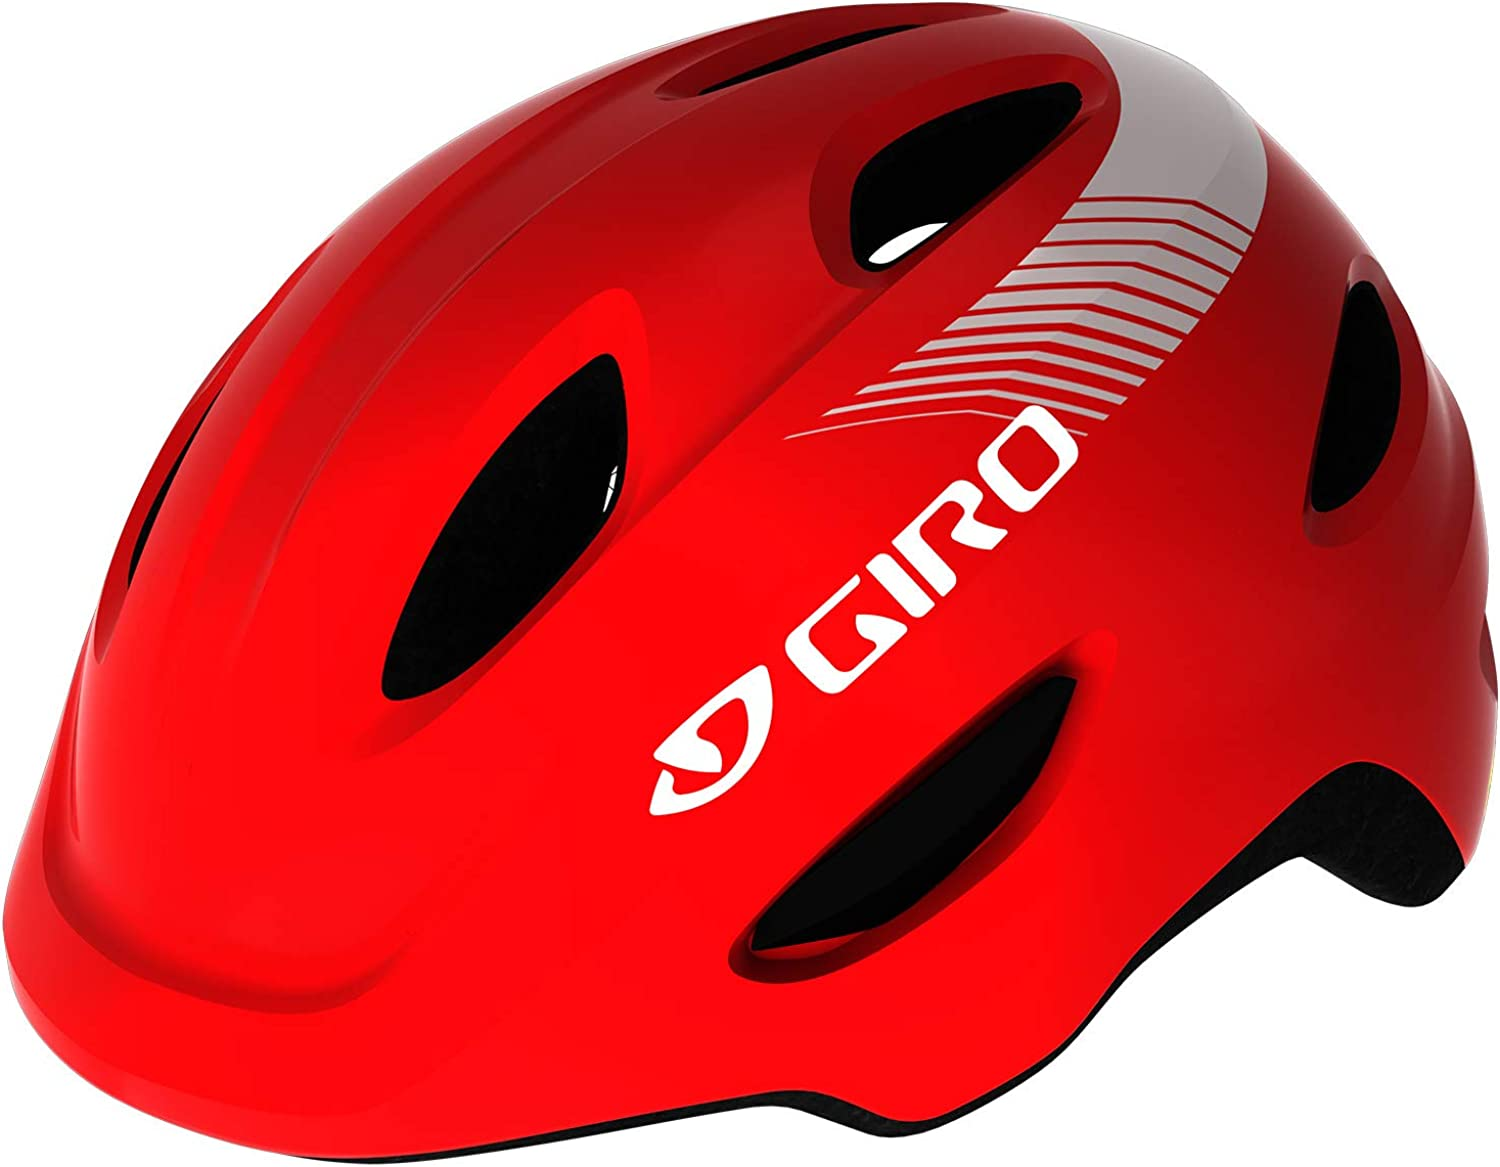 Giro Scamp Youth Recreational Super Special SALE held Bike Max 81% OFF Helmet Cycling